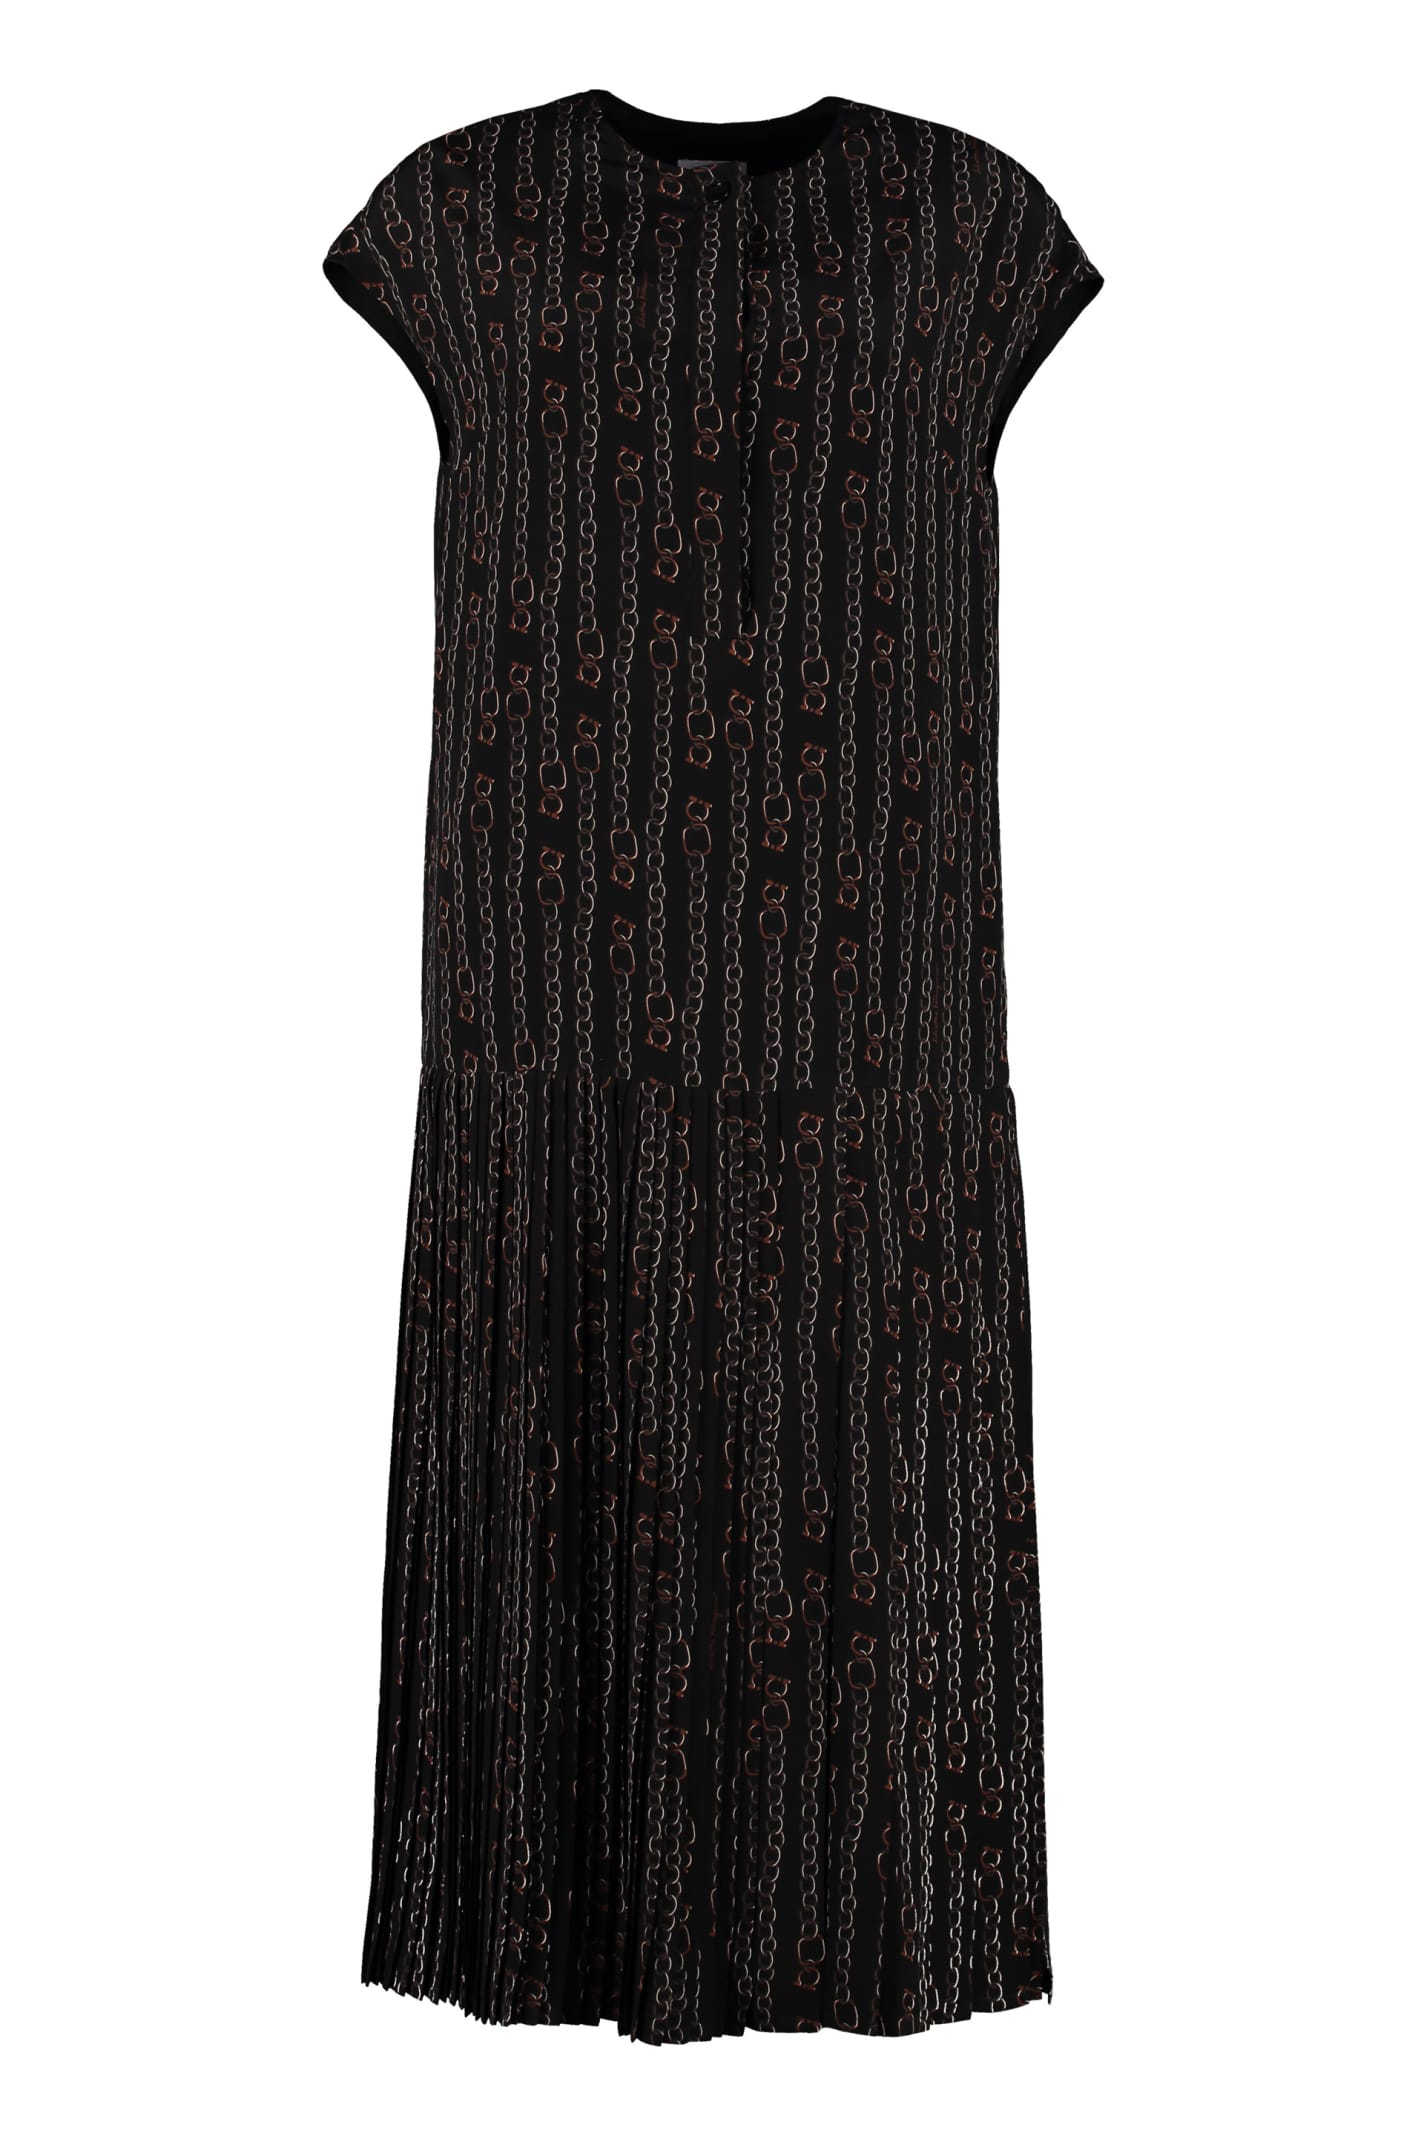 Salvatore Ferragamo Plated Skirt Dress